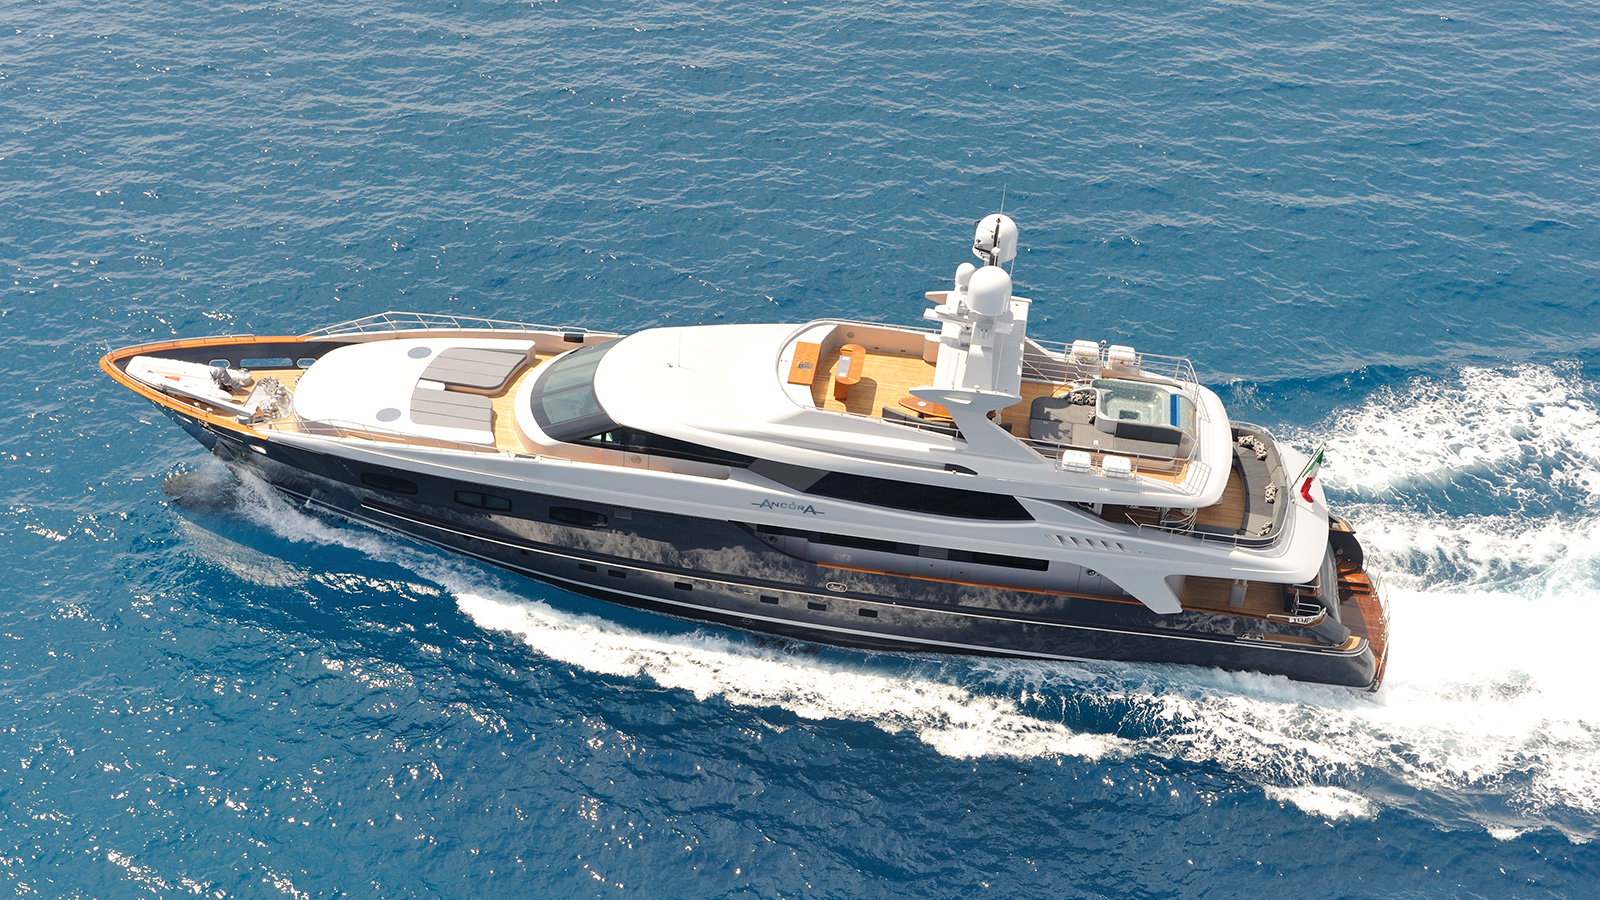 luxury yacht IRA cruising